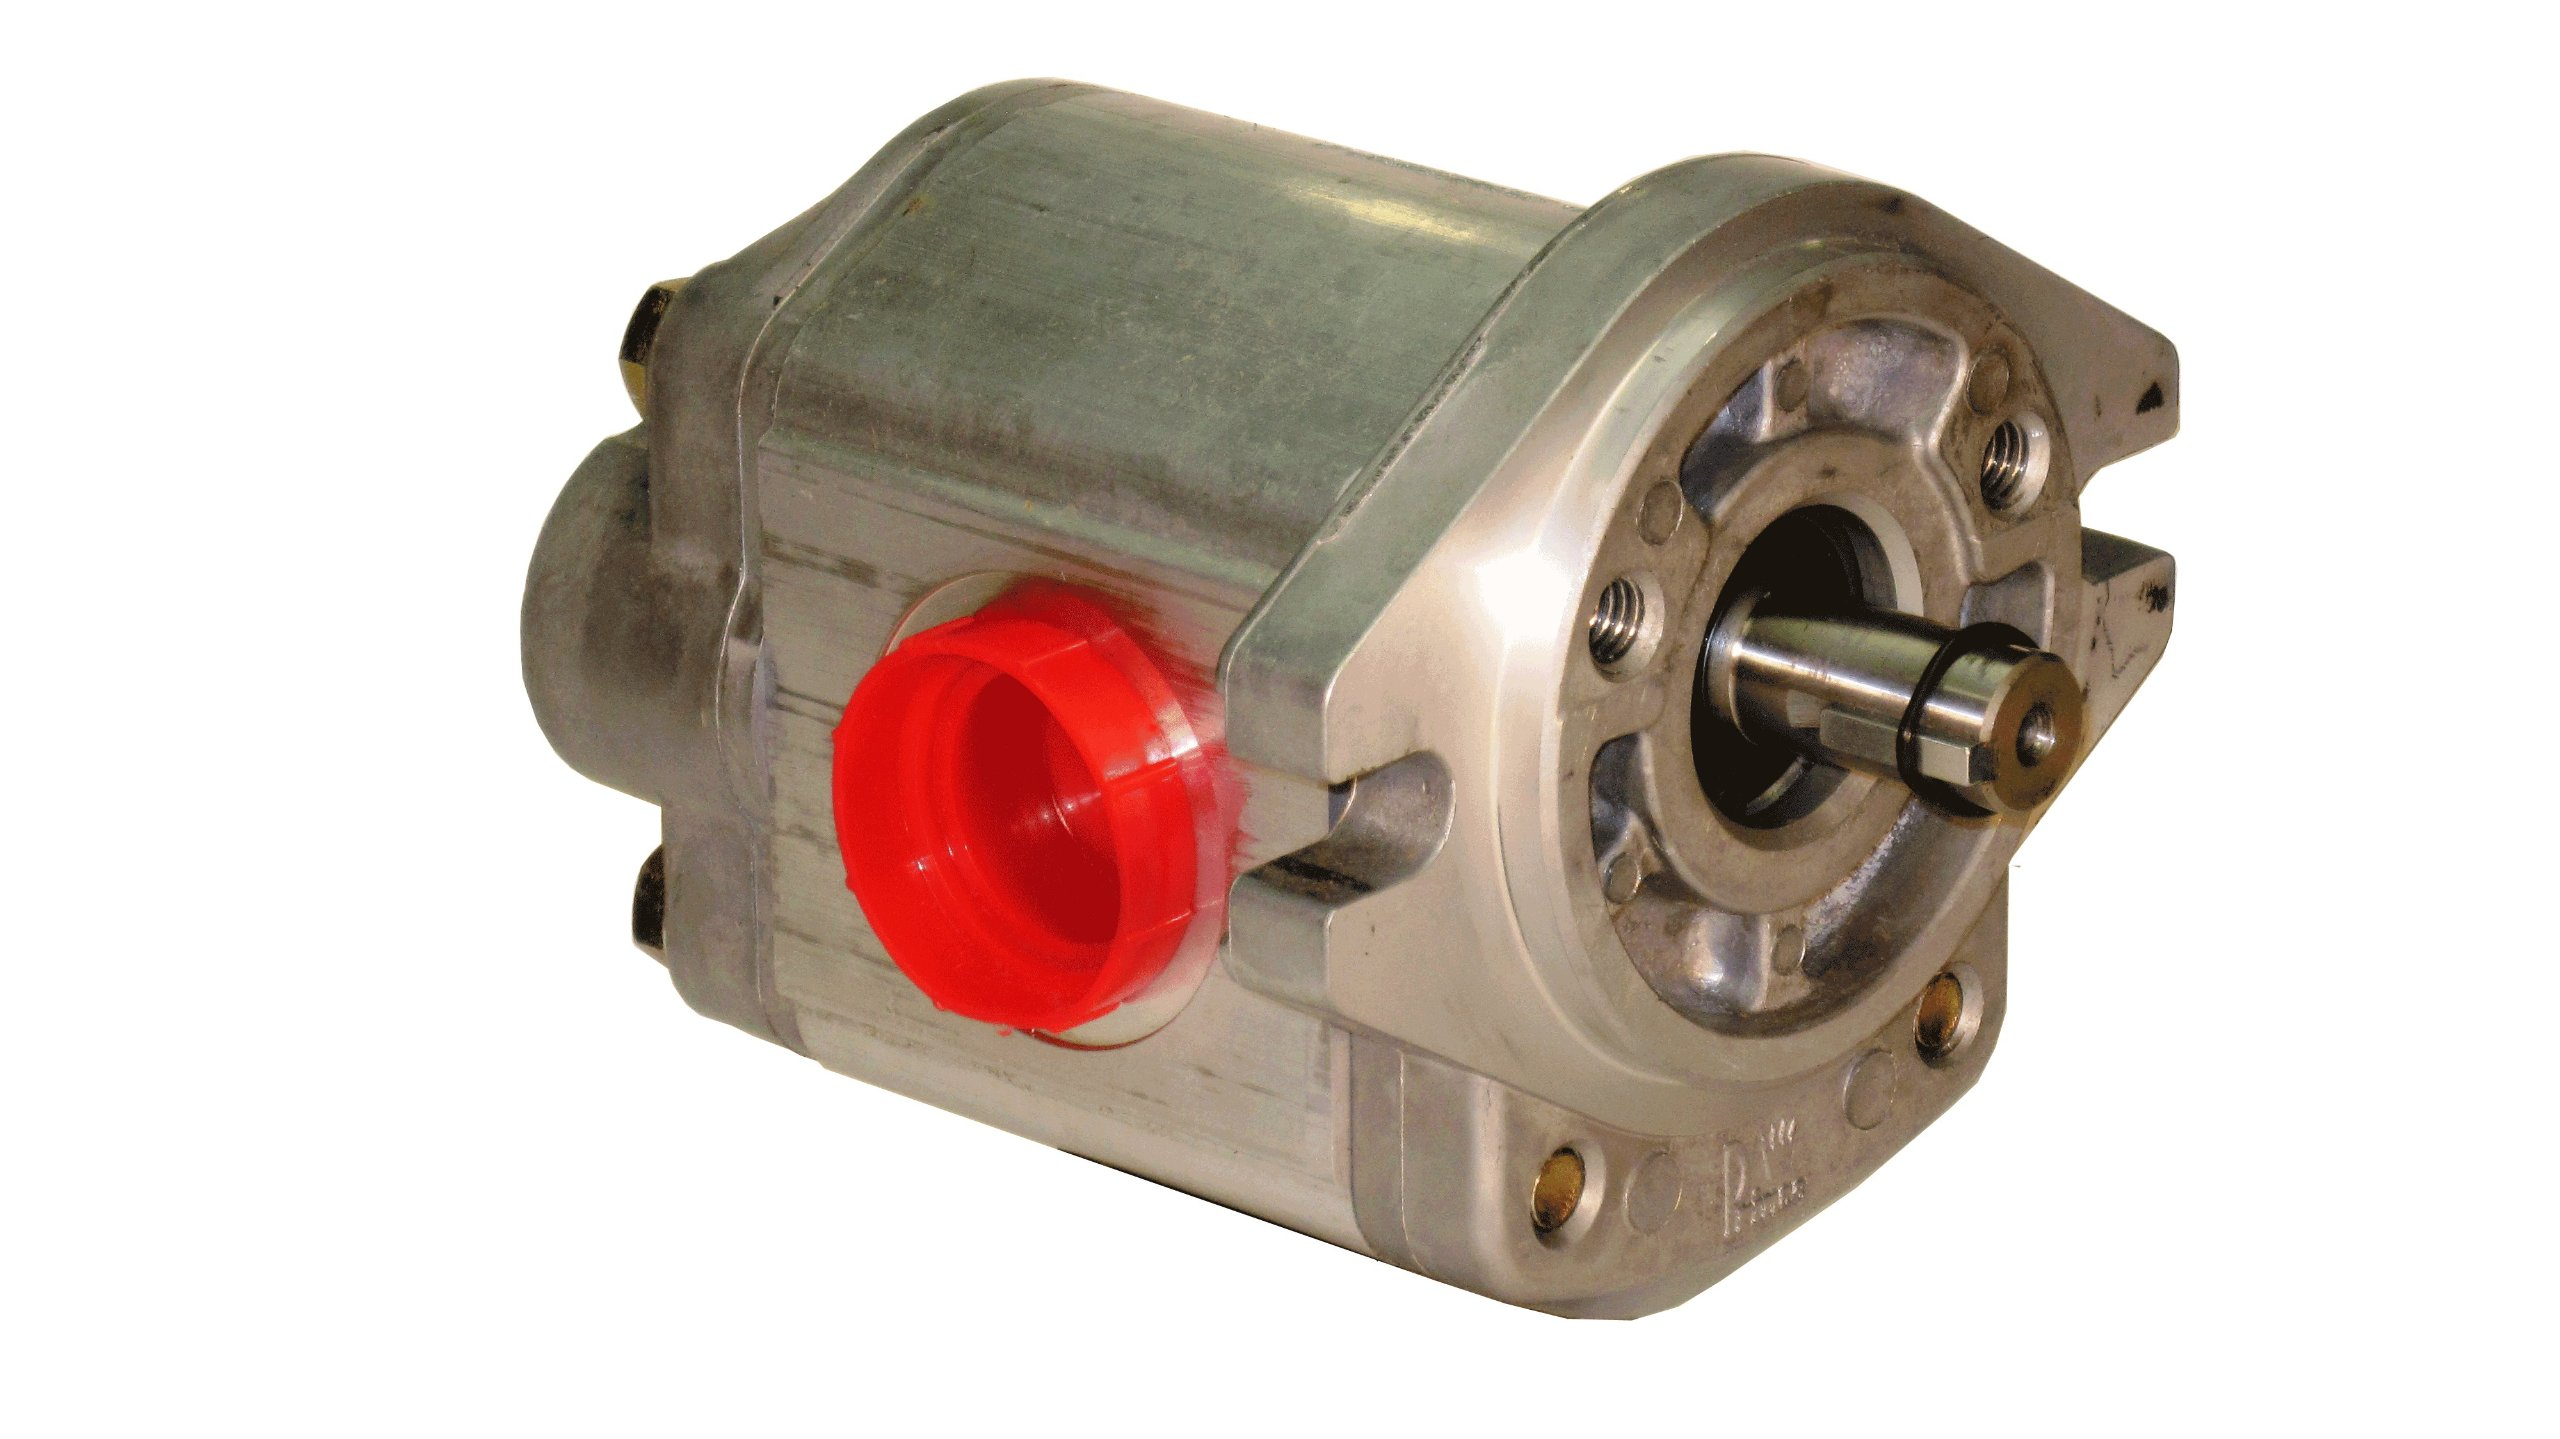 Prince Manufacturing SP20B27A9H2-R Hydraulic Gear Pump, 41.13 HP Motor, 2500 PSI Maximum Pressure, 24.46 GPM Maximum Flow Rate, Clockwise Rotation, Self-Lubricating, SAE A Flange, Aluminum by Prince Manufacturing (Image #1)